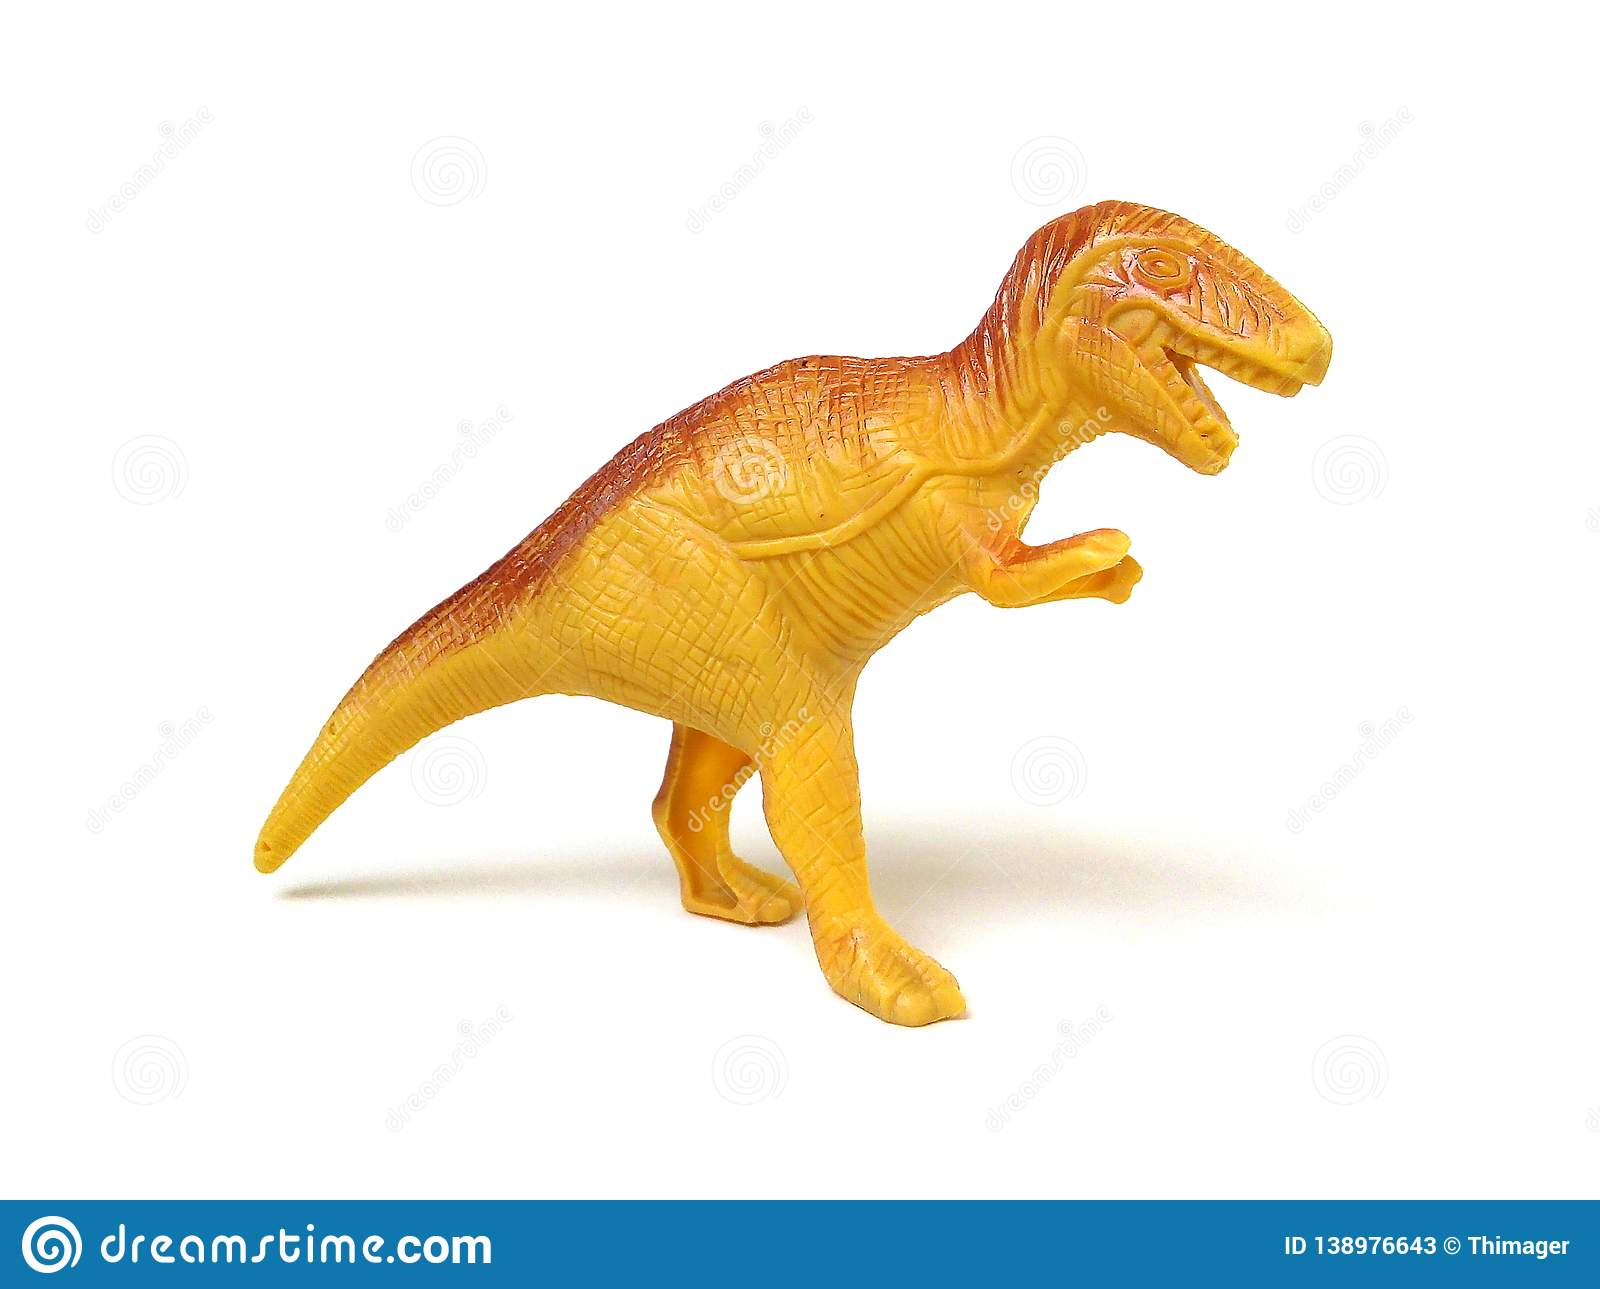 Tyrannosaurus rex or t-rex dinosaur toy. Close up of brown plastic dinosaur toy isolated on white background stock photos